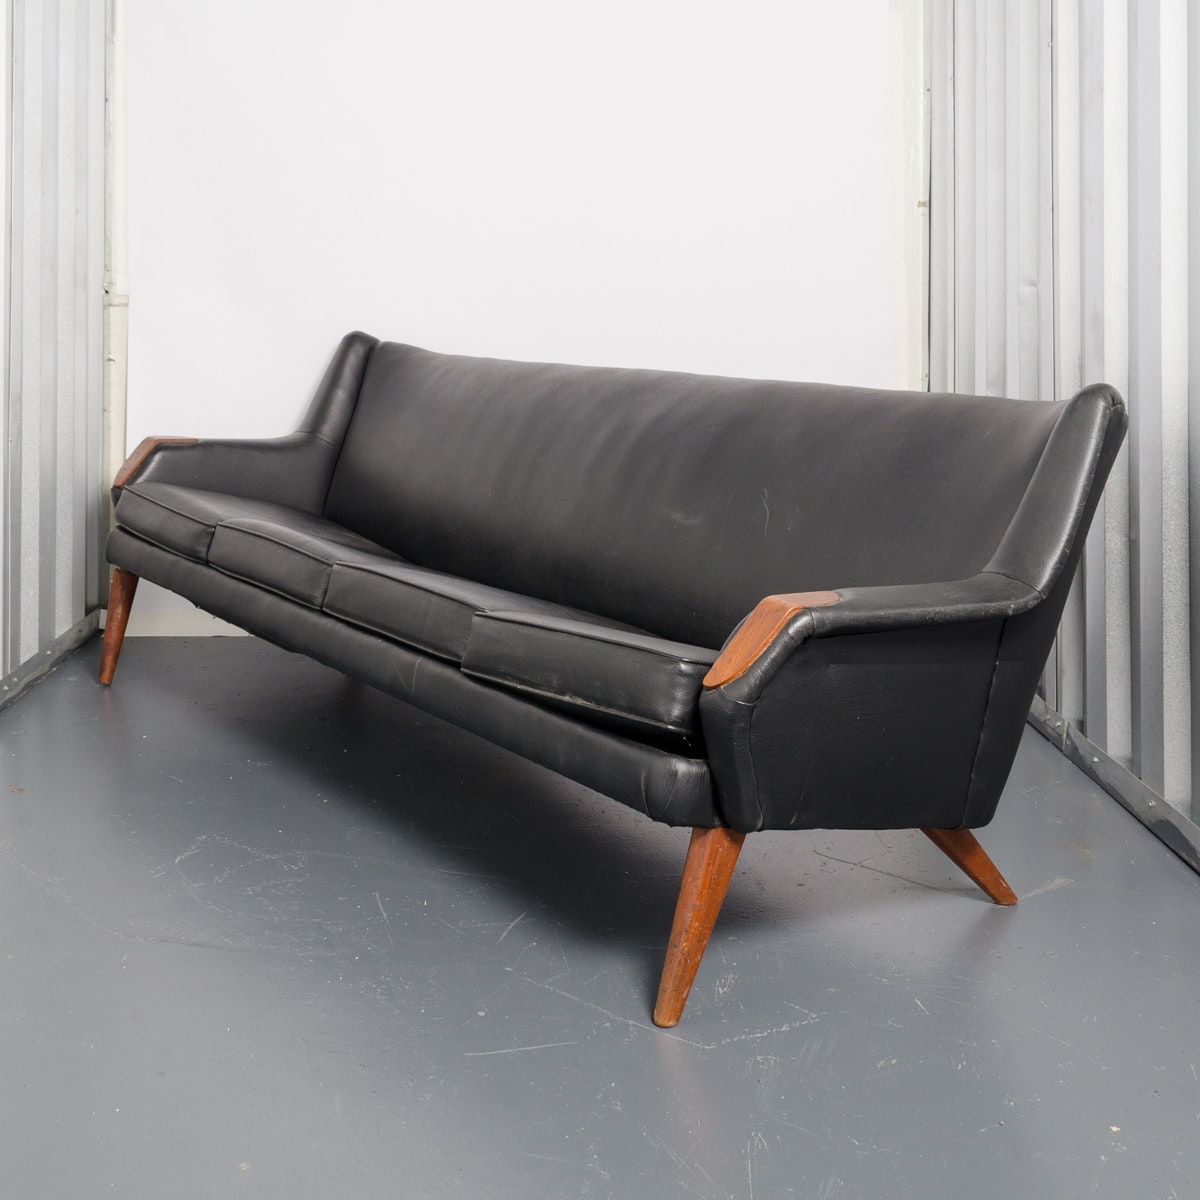 Vintage Mid Century Modern Black Leather Sofa ...